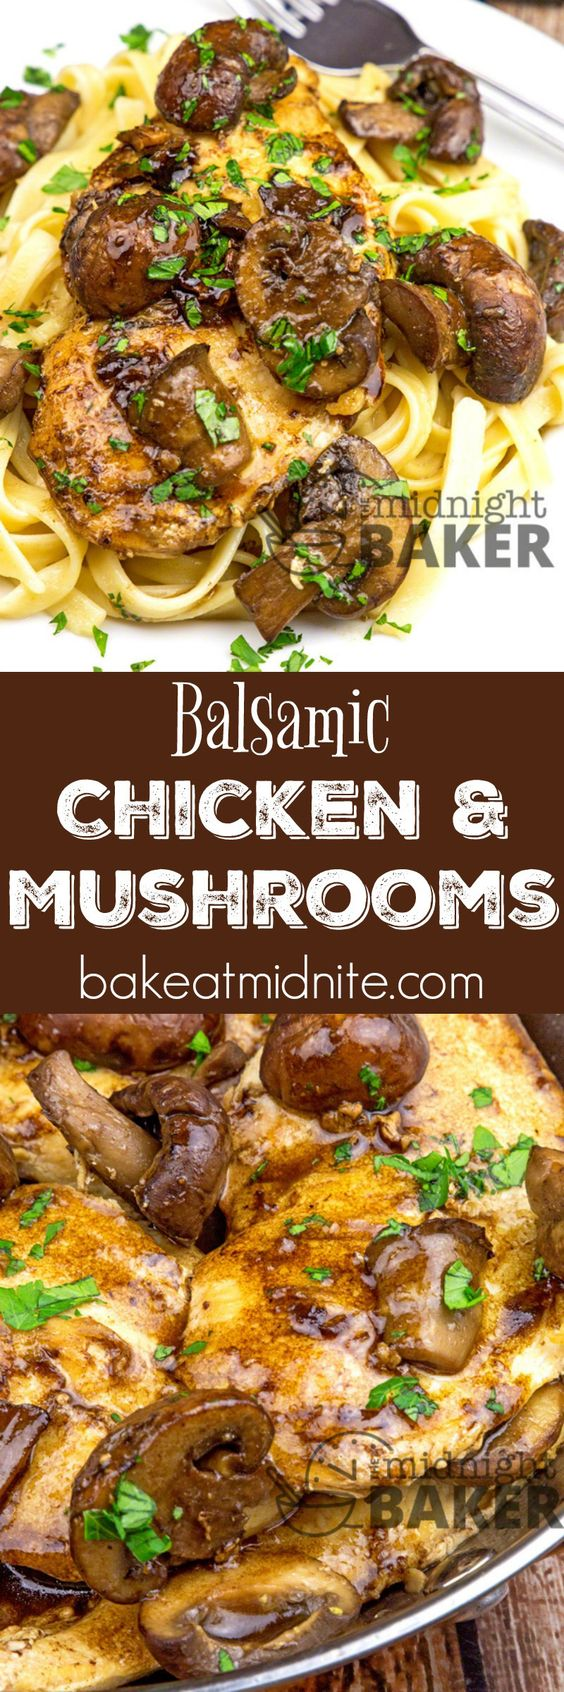 30 Minute Balsamic Chicken & Mushrooms Dinner Recipe via Midnight Baker - Delicious restaurant-quality balsamic chicken dinner ready in under 30 minutes! - The BEST 30 Minute Meals Recipes - Easy, Quick and Delicious Family Friendly Lunch and Dinner Ideas